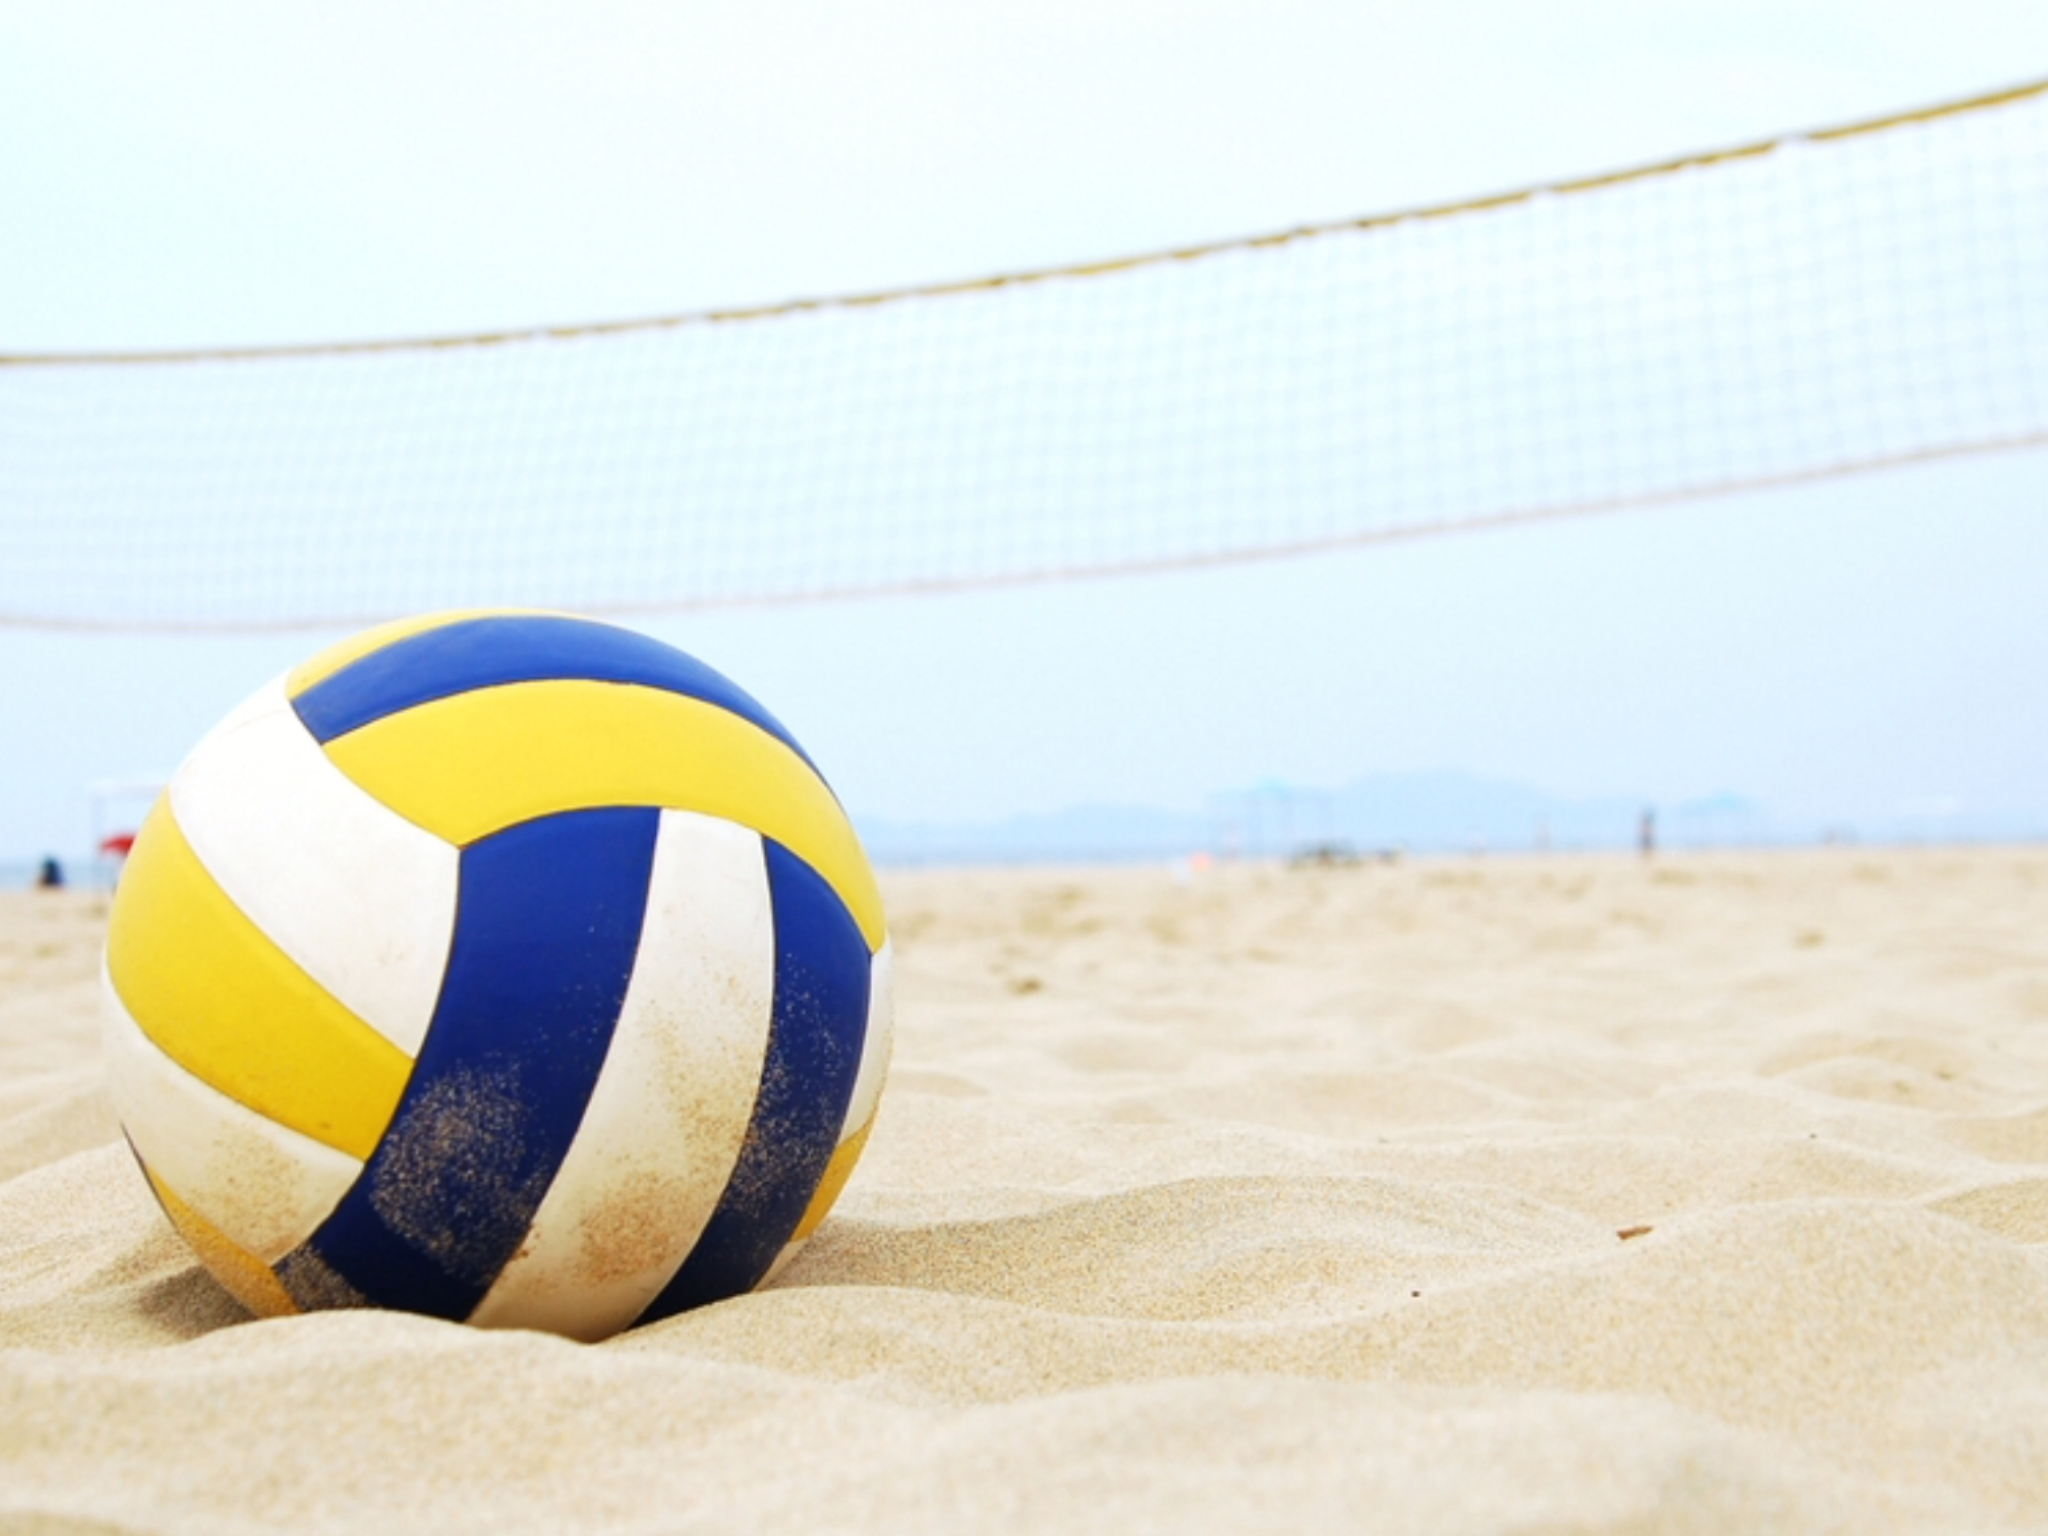 I Absolutely Love Volleyball And I Thought You Guys Should See This Pic Of A Volleyball On A Beach Beach Volleyball Volleyball Tournaments Volleyball Workouts